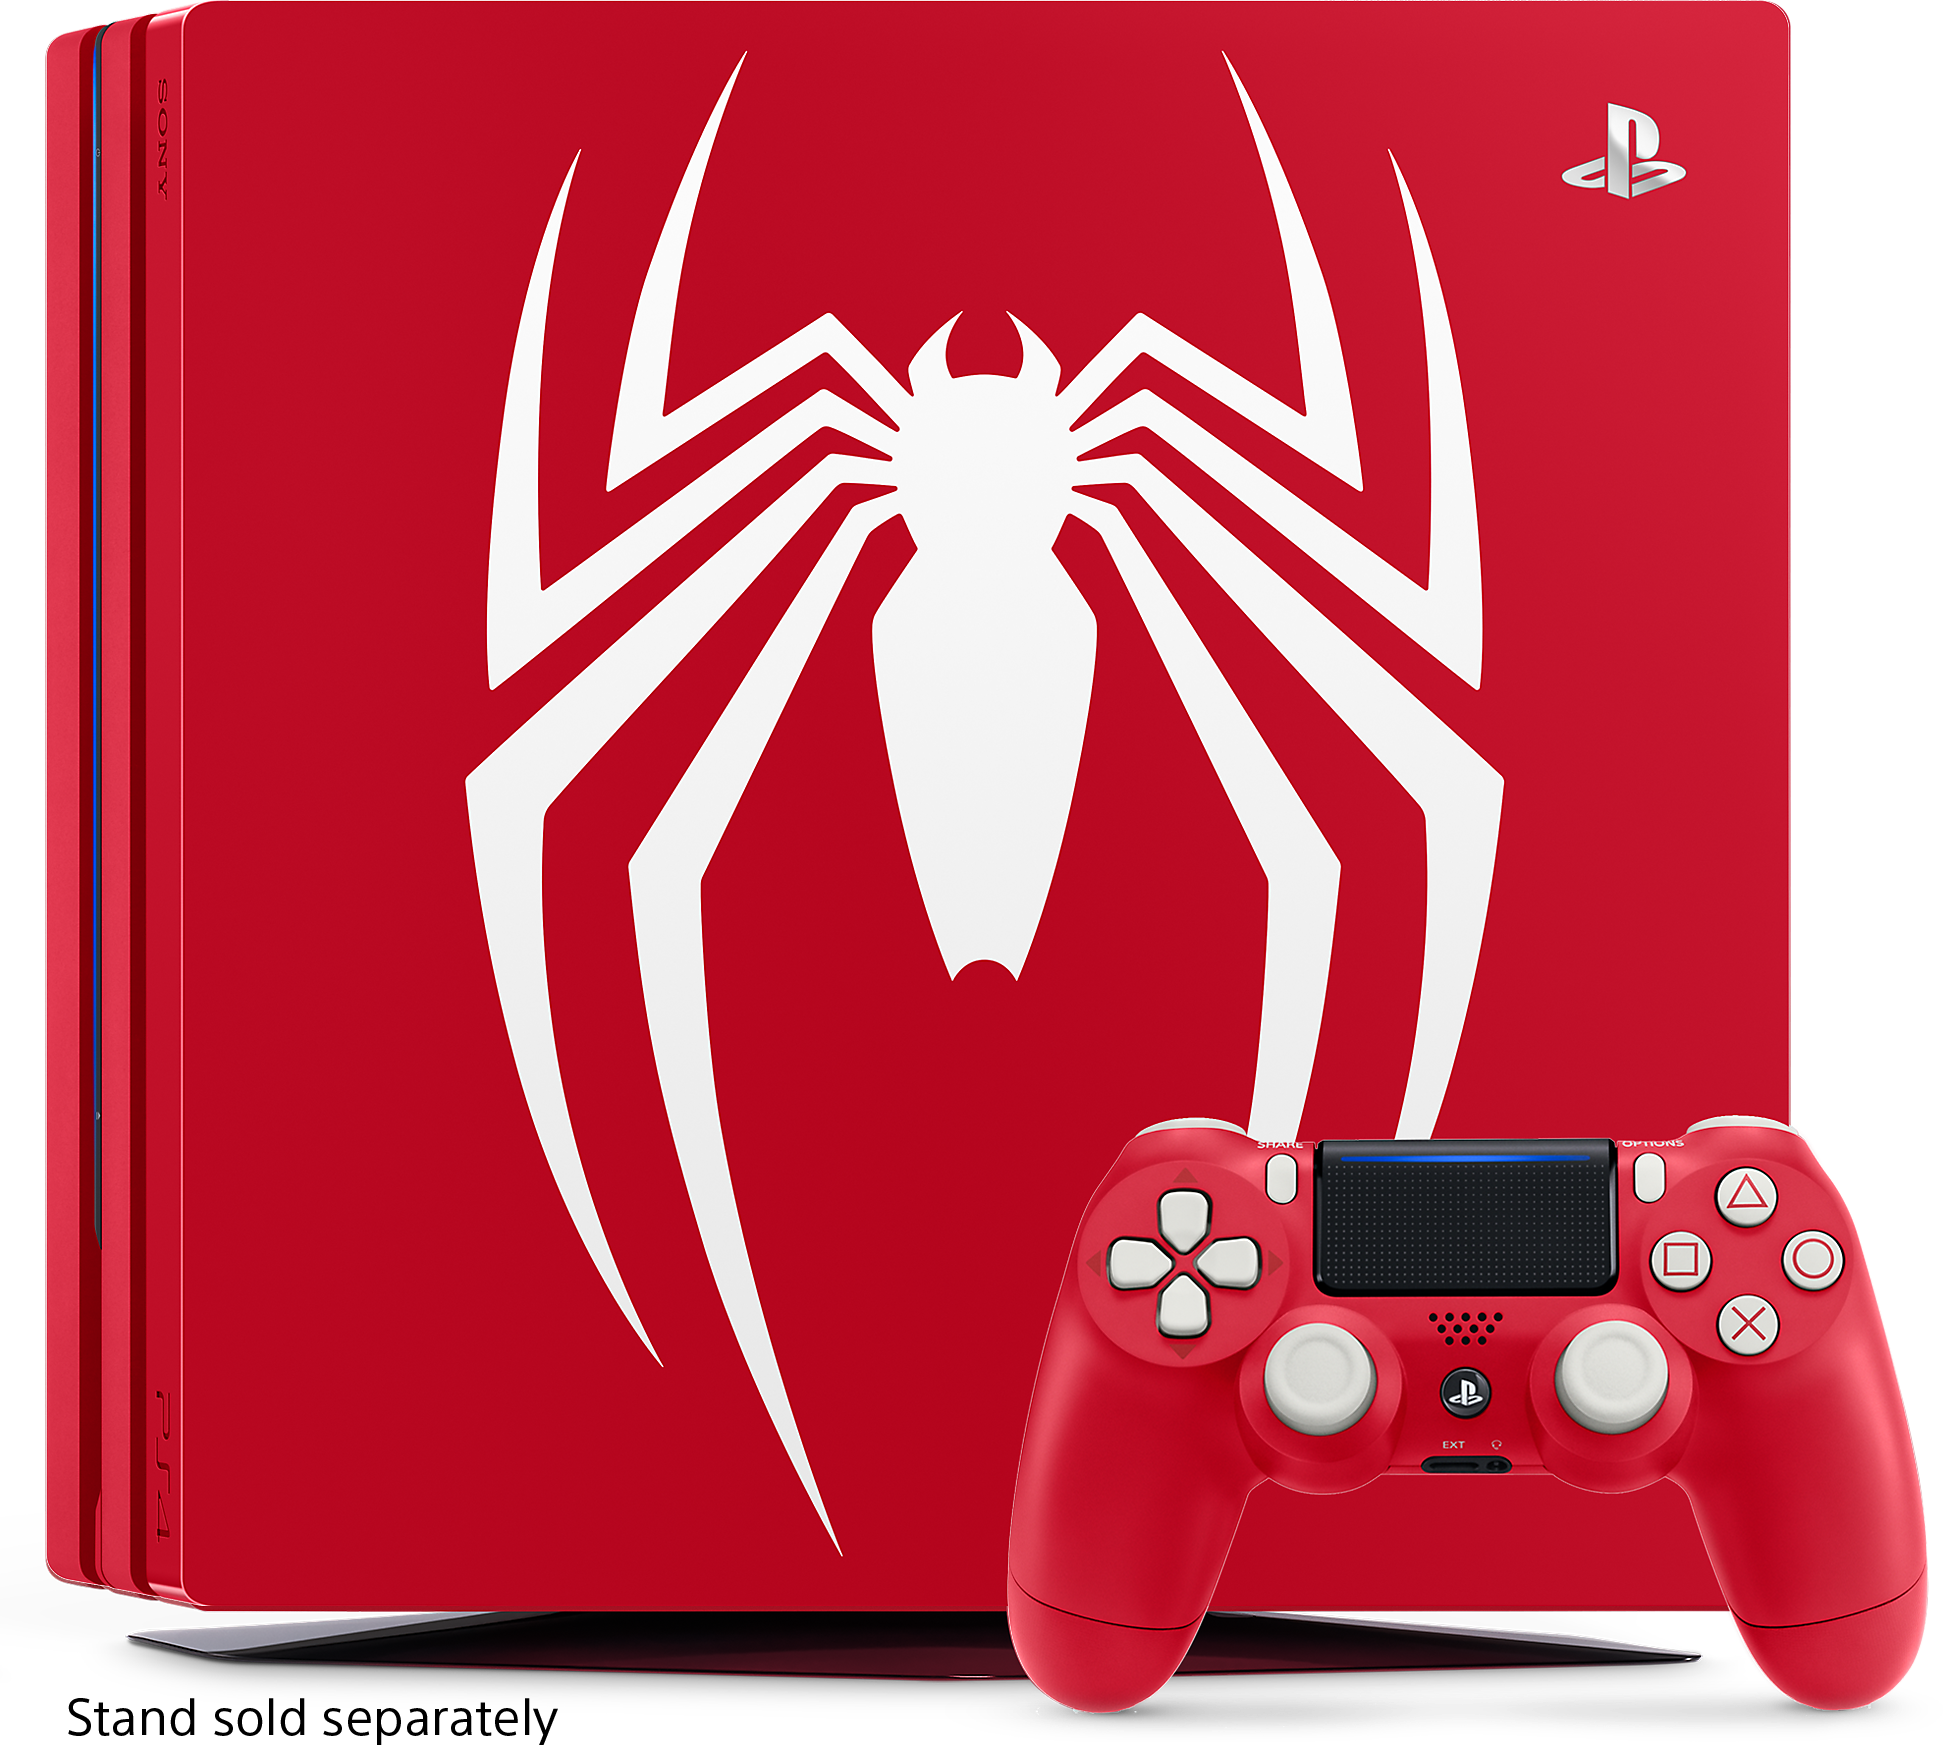 Good Condition box Only Spider-man Limited Edition Ps4 Pro 1tb Console Moderate Price